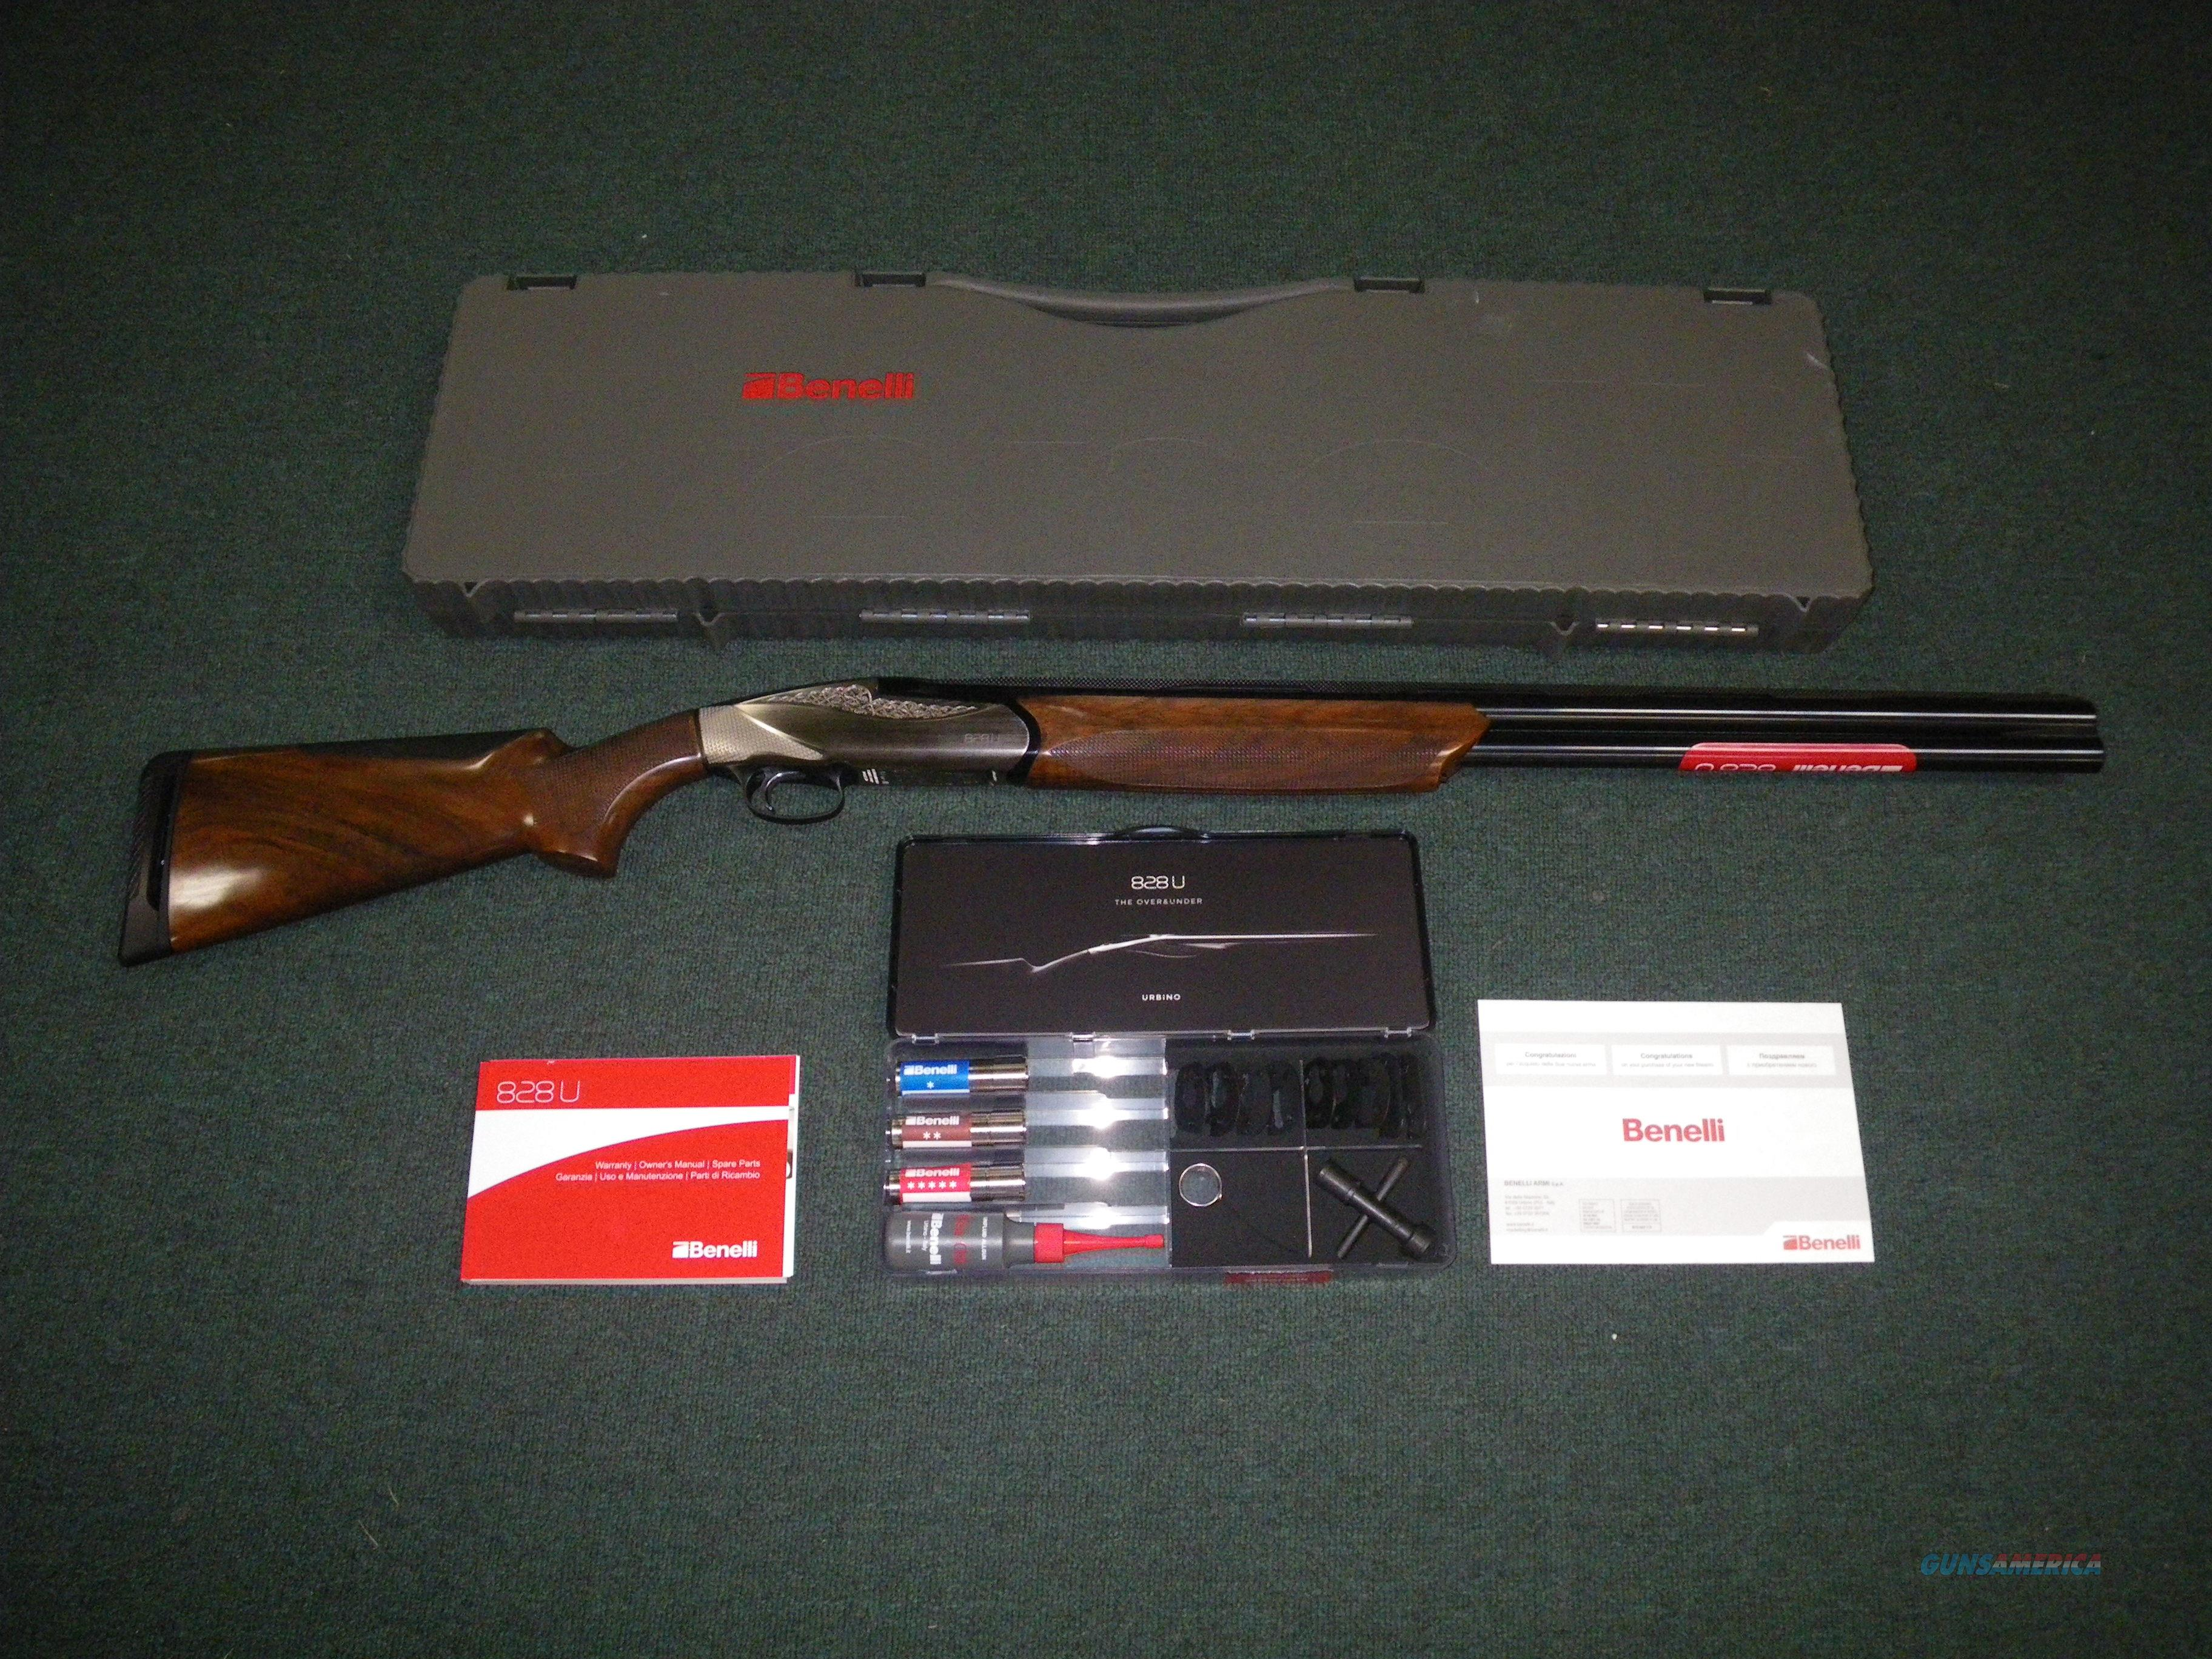 "Benelli 828U Shotgun Nickel/Wood 12ga 28"" NEW #10704  Guns > Shotguns > Benelli Shotguns > Sporting"